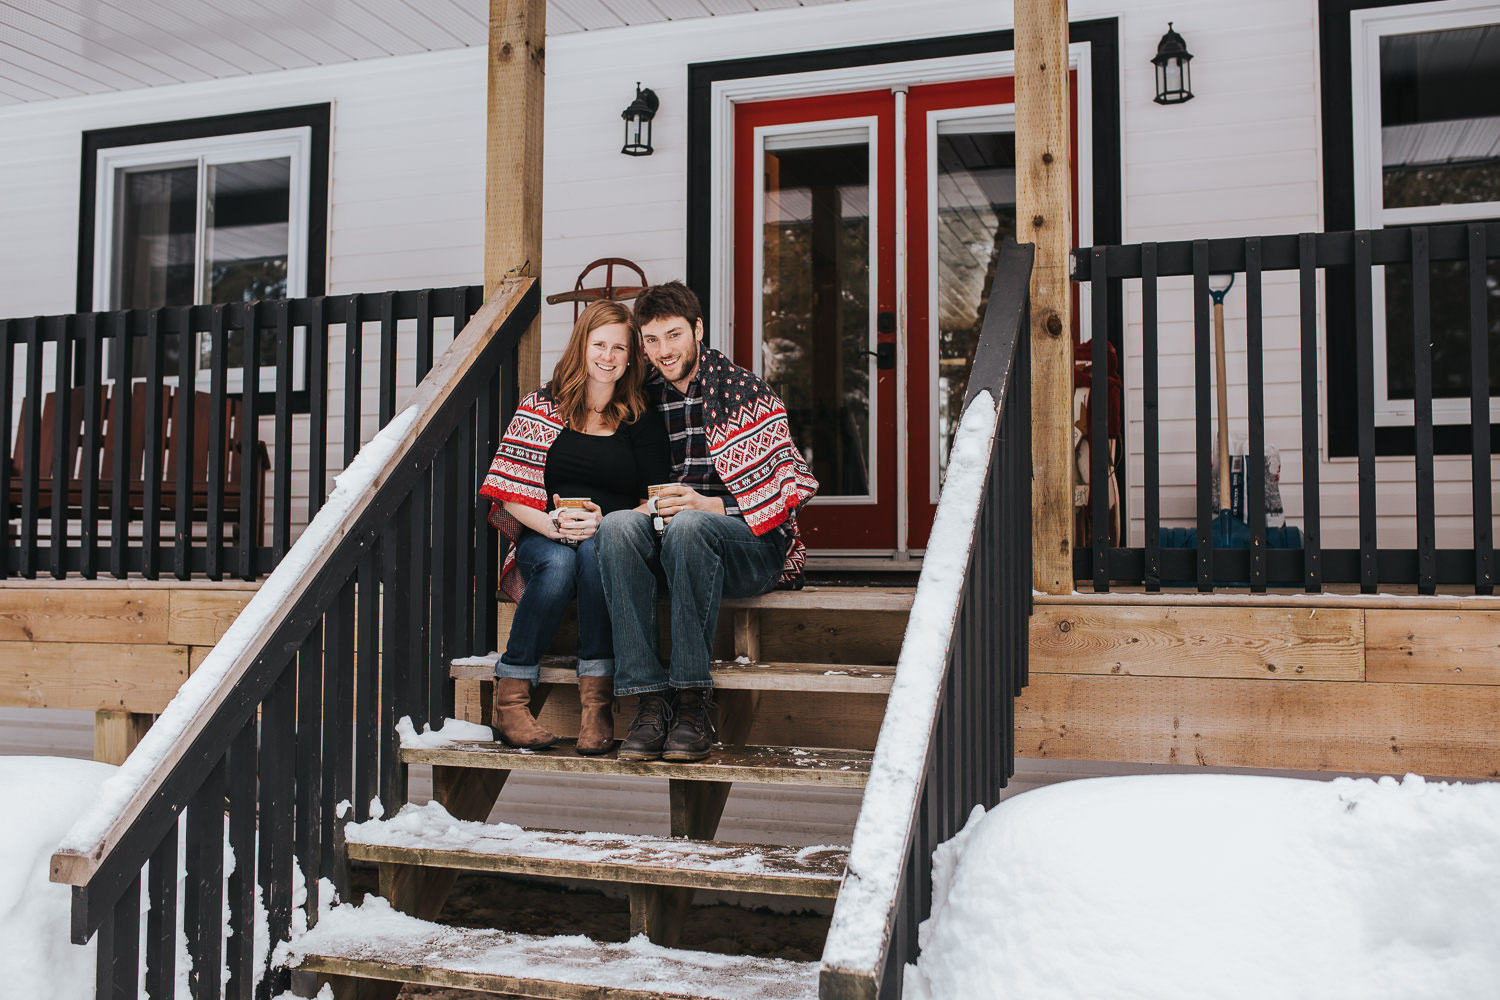 parents to be sitting on front porch steps wrapped in blanket looking at camera  - Markham lifestyle photos